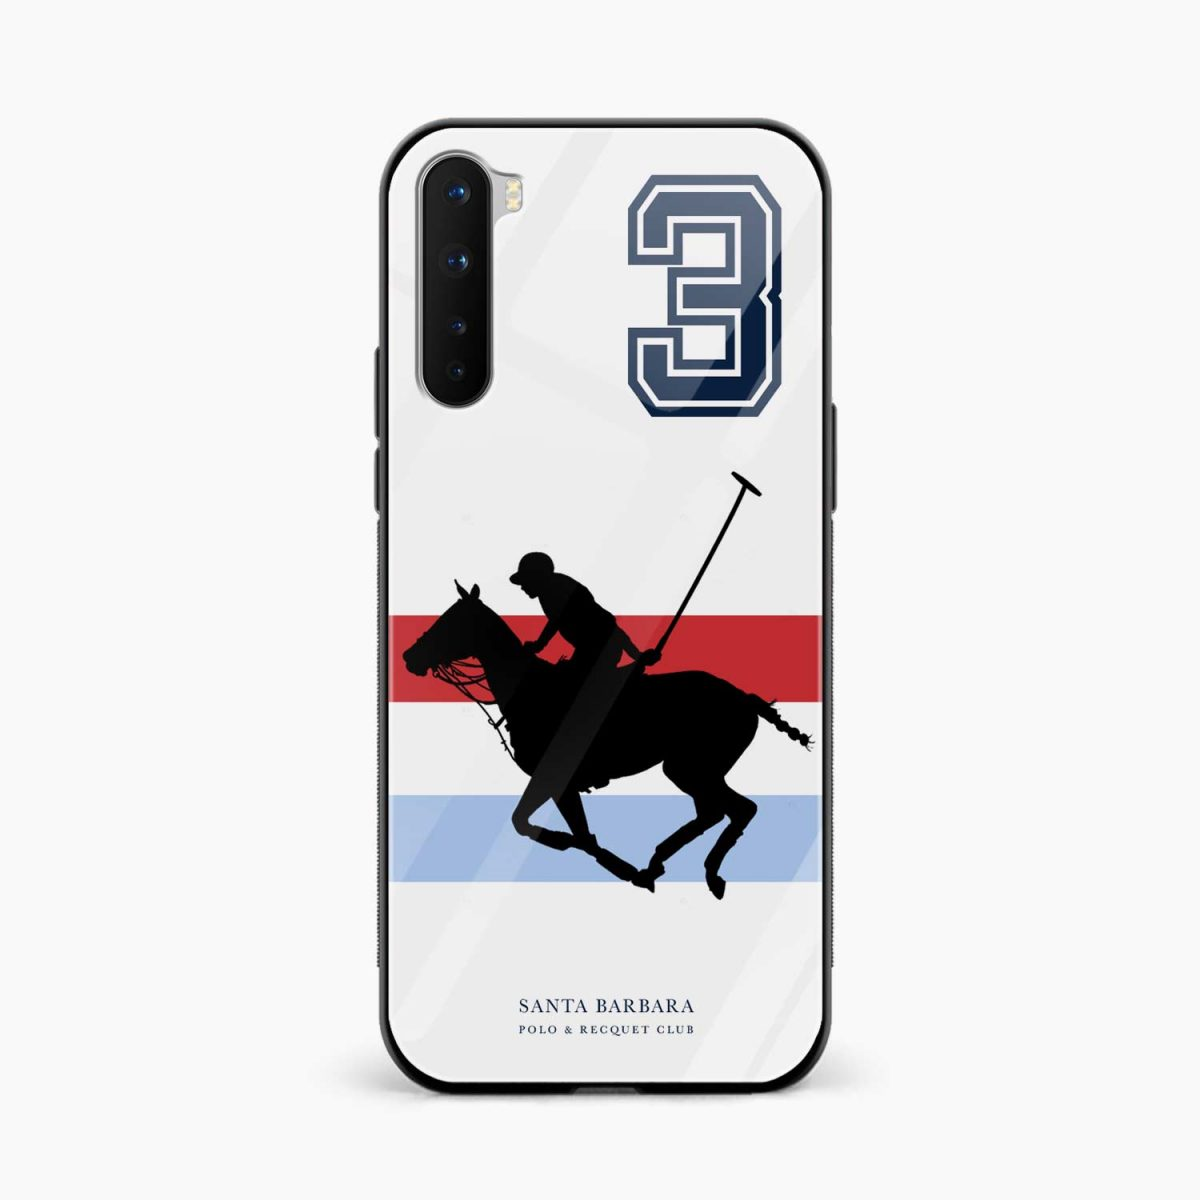 sant barbara polo front view oneplus nord back cover